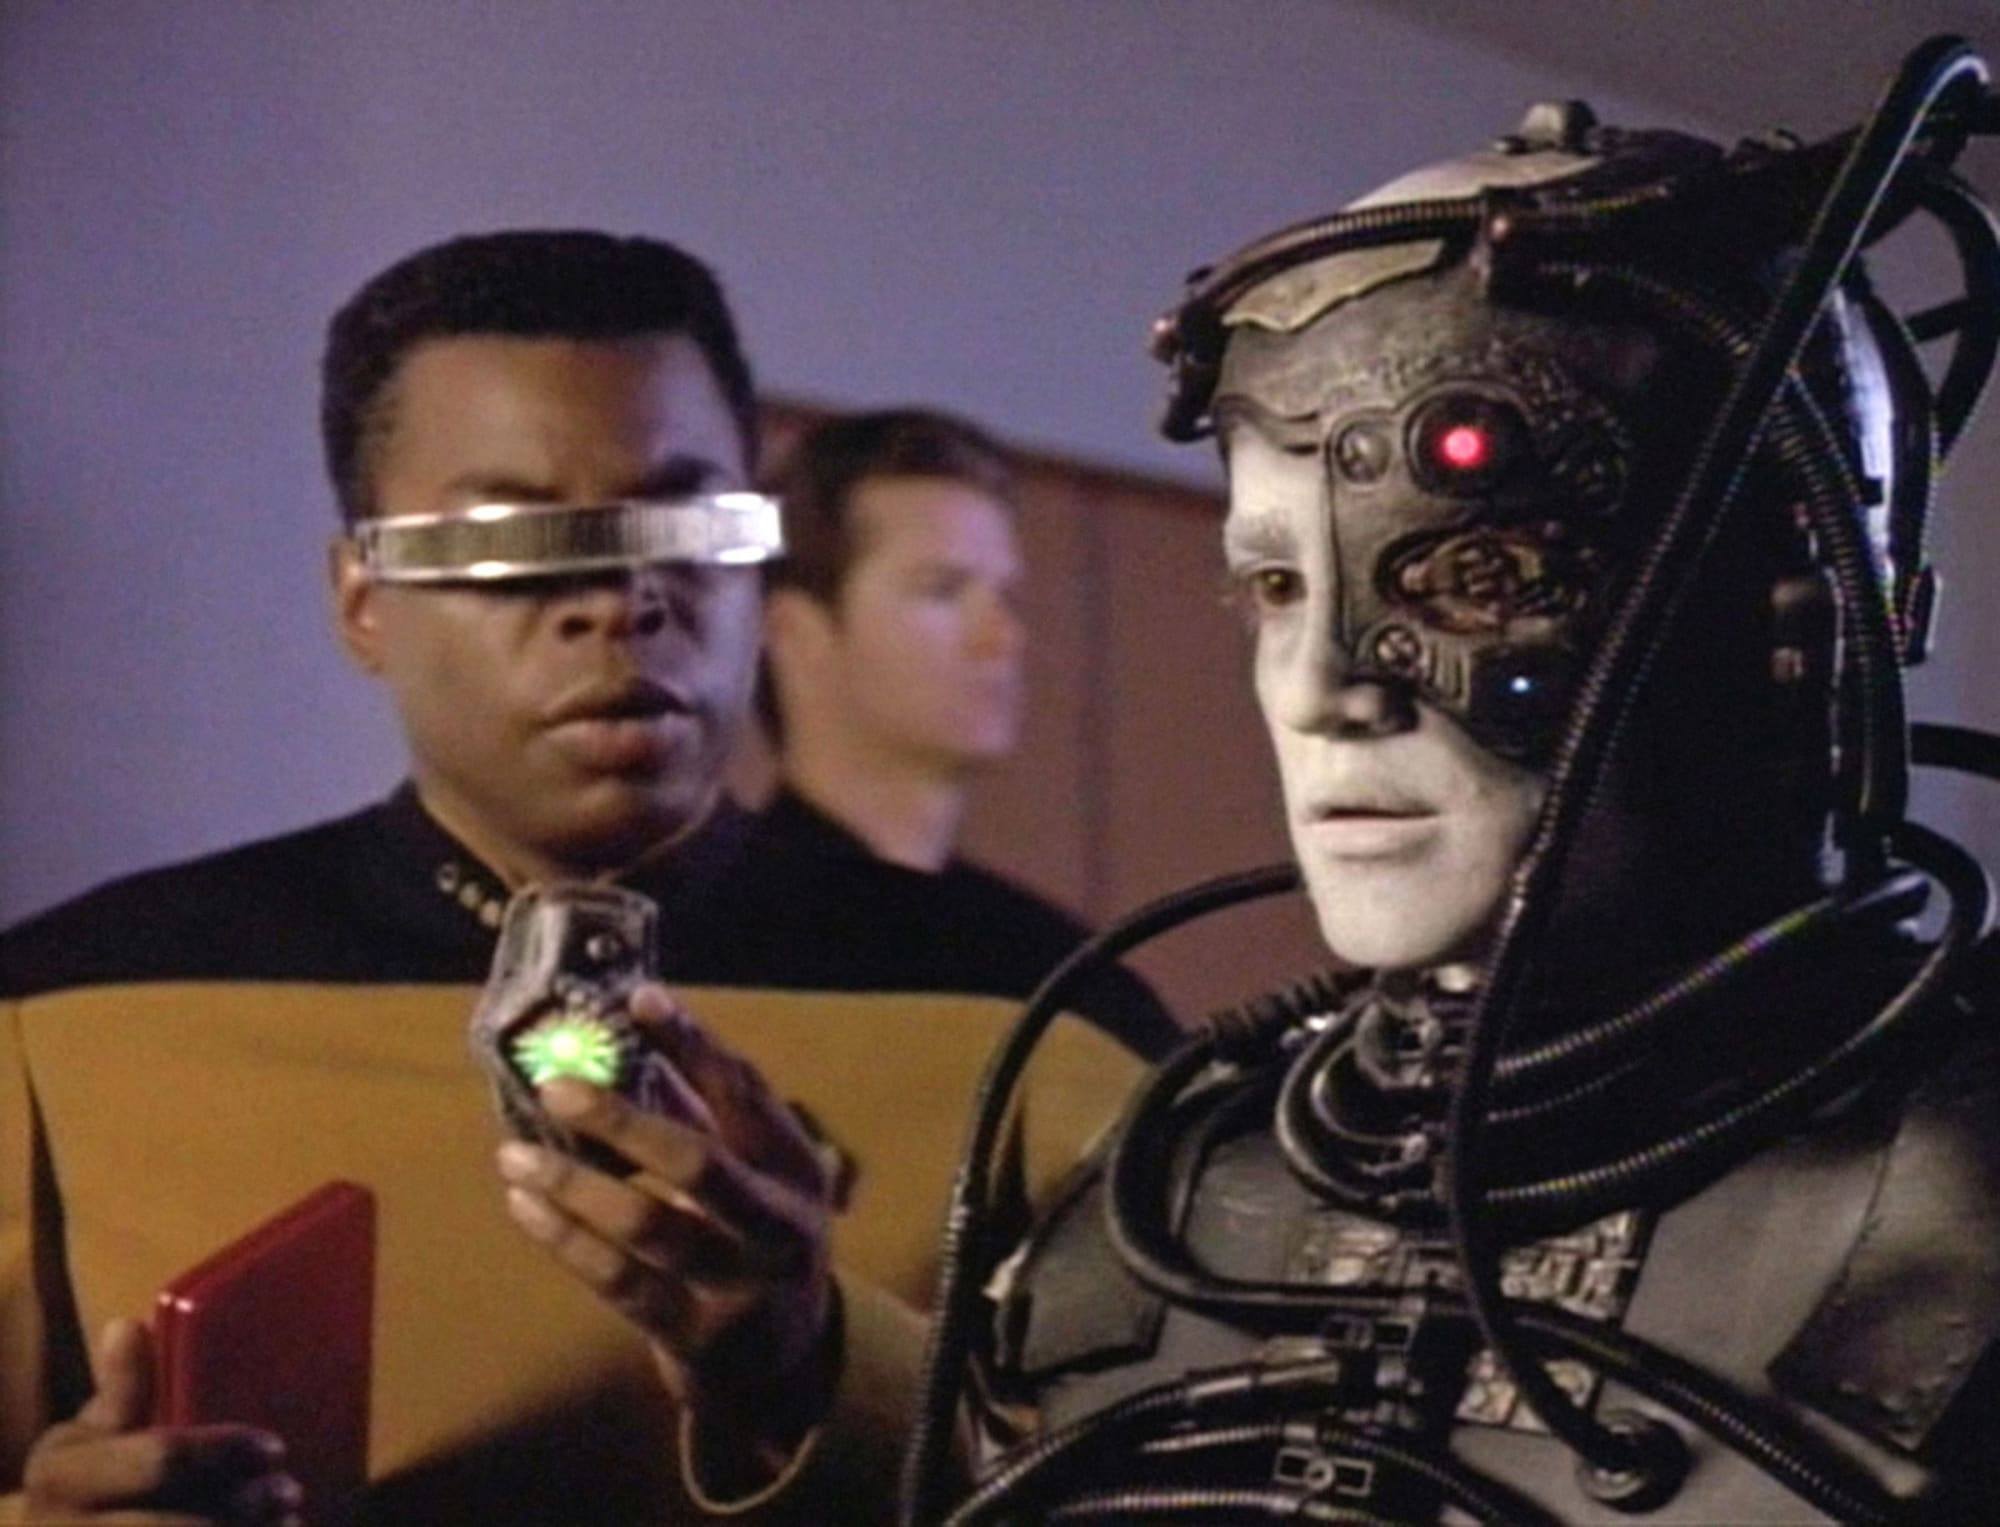 Technology will rot your brain, a precaution told by Star Trek